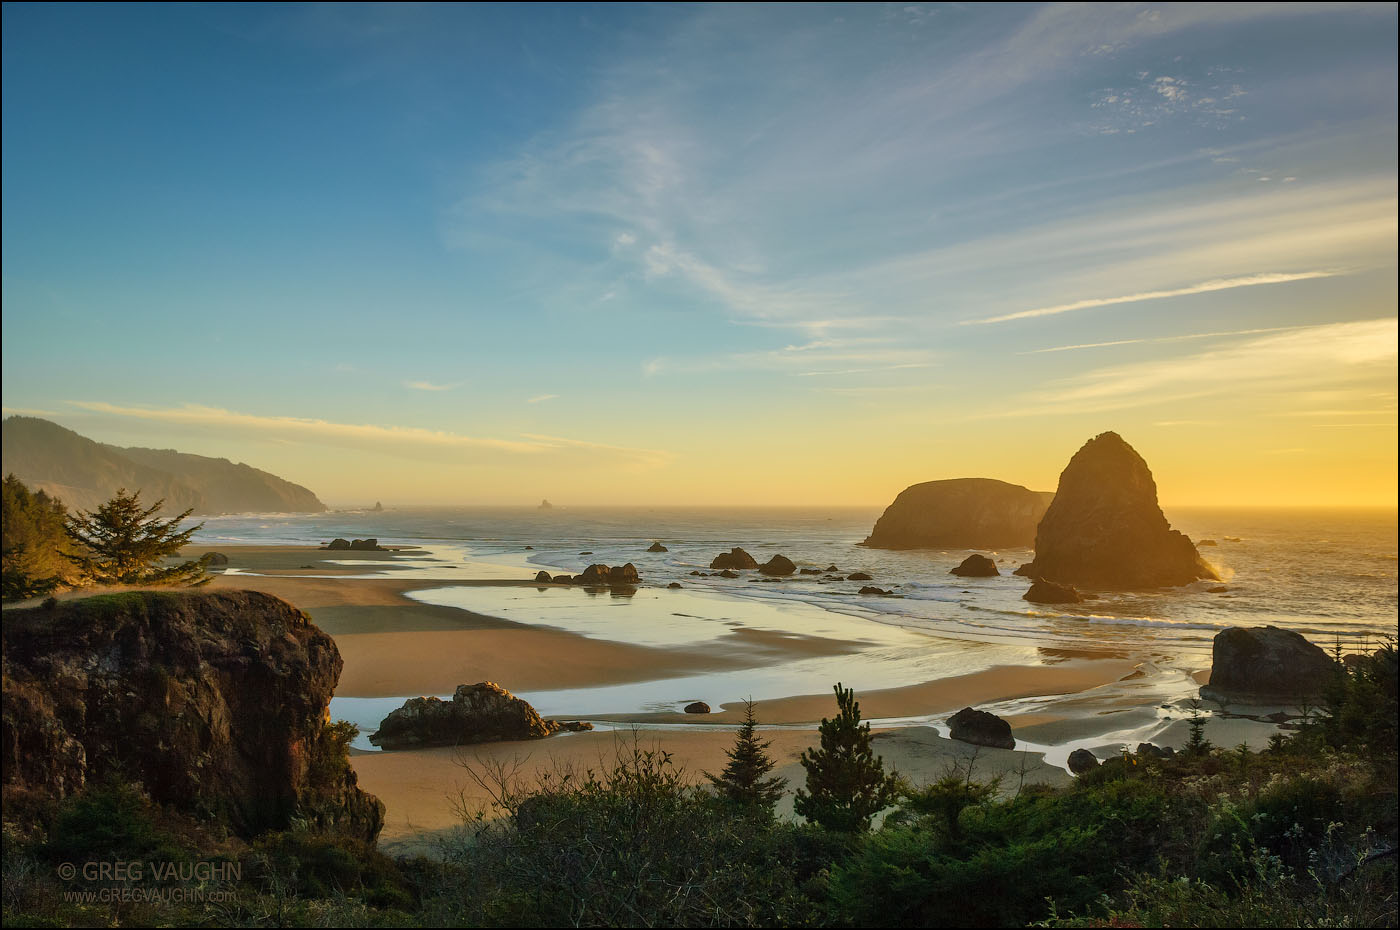 Sea stacks and sunset at Whaleshead Beach, Samuel H. Boardman State Scenic Corridor, southern Oregon coast.